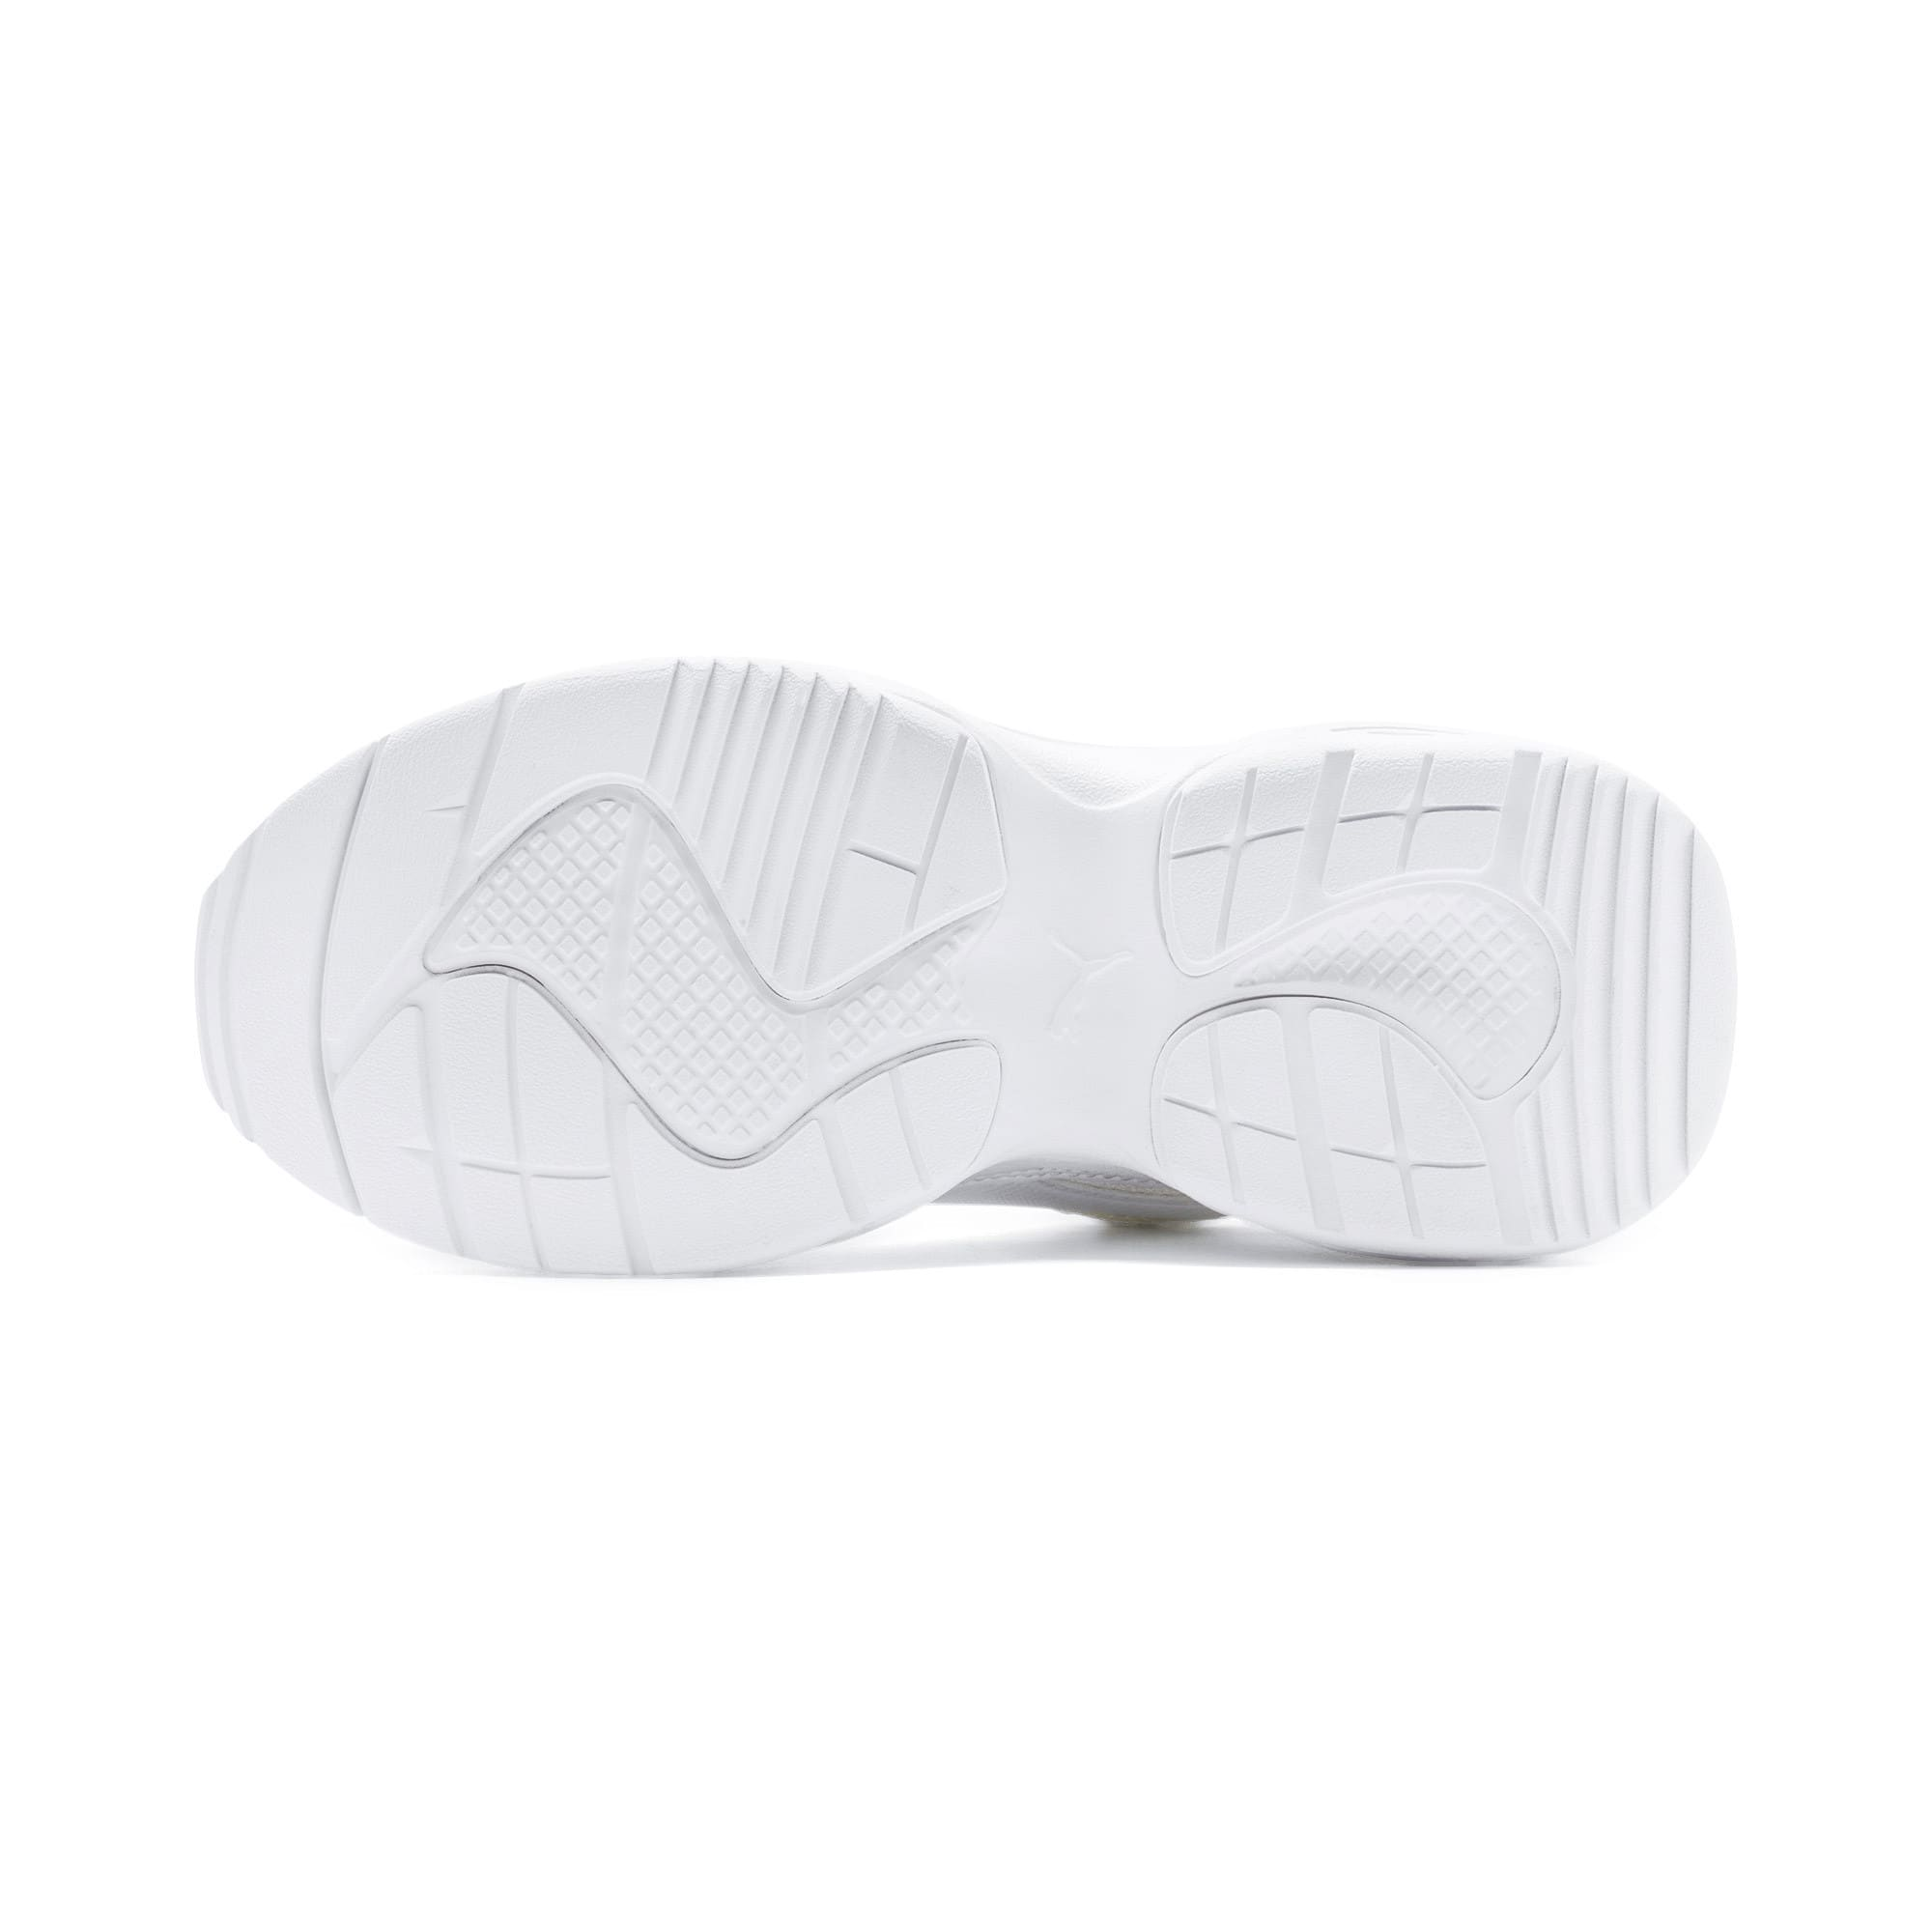 Thumbnail 4 of Cilia Youth Trainers, Puma White-Bridal Rose, medium-IND